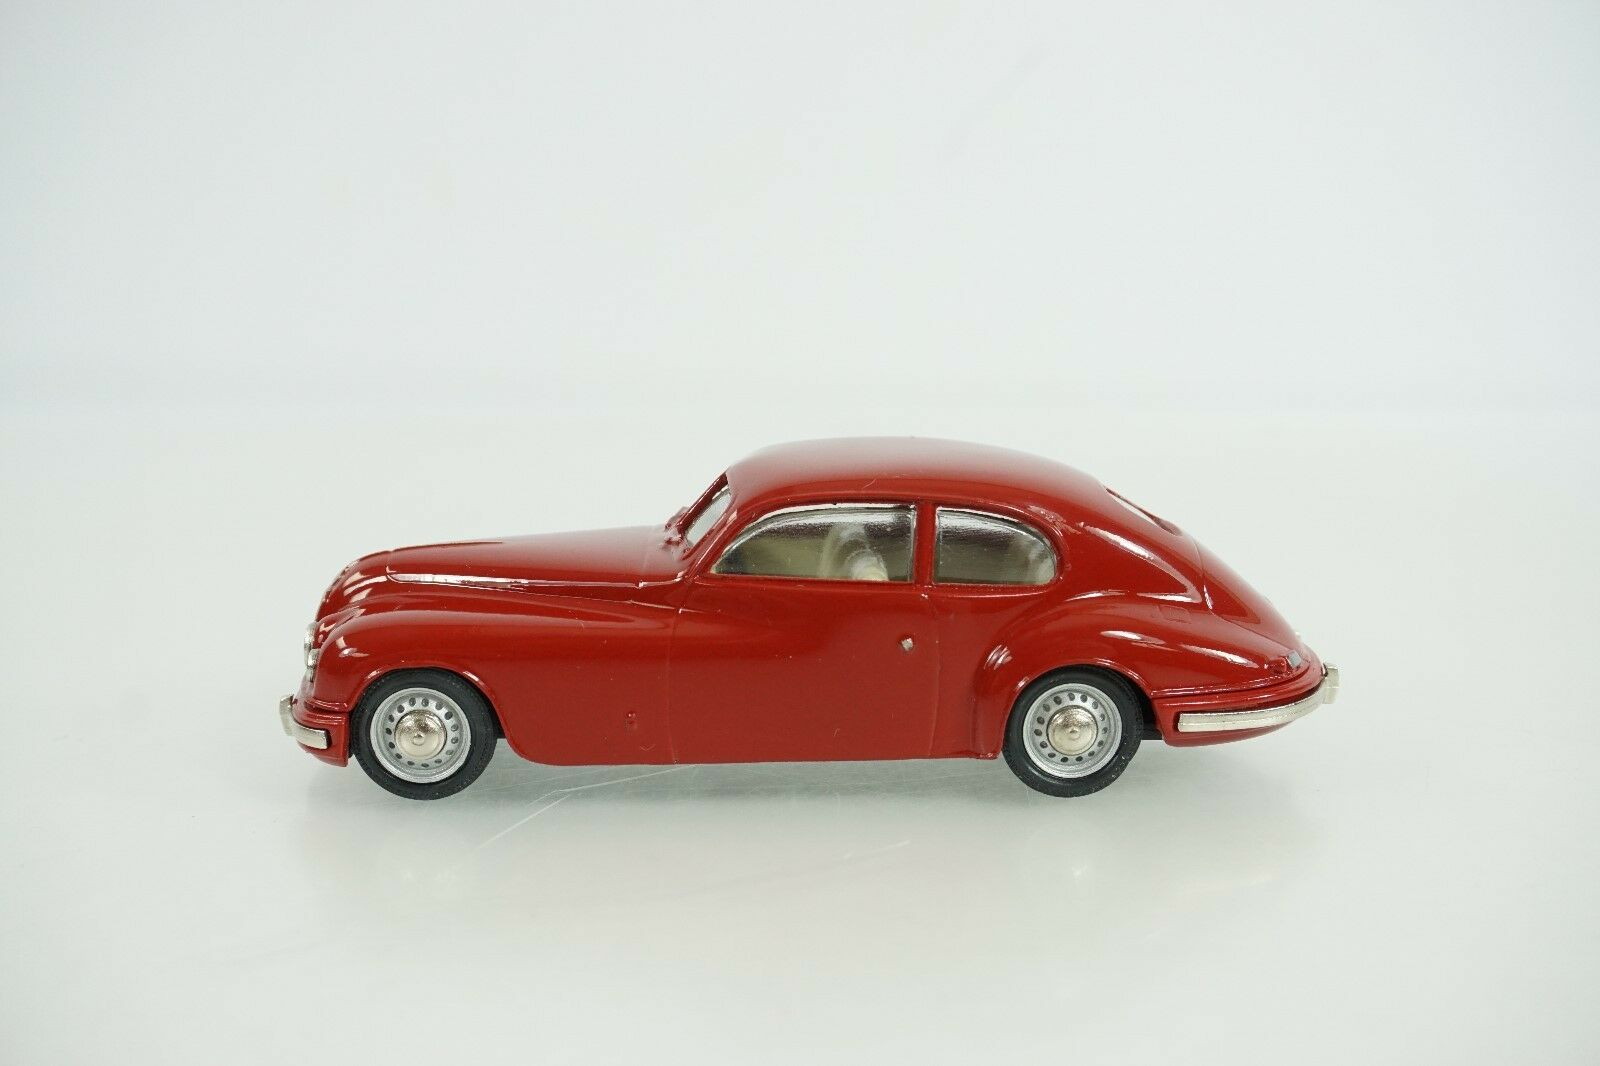 Pathfinder Models Die Cast 1952 Bristol 401 Item No. 3 New VERY NICE